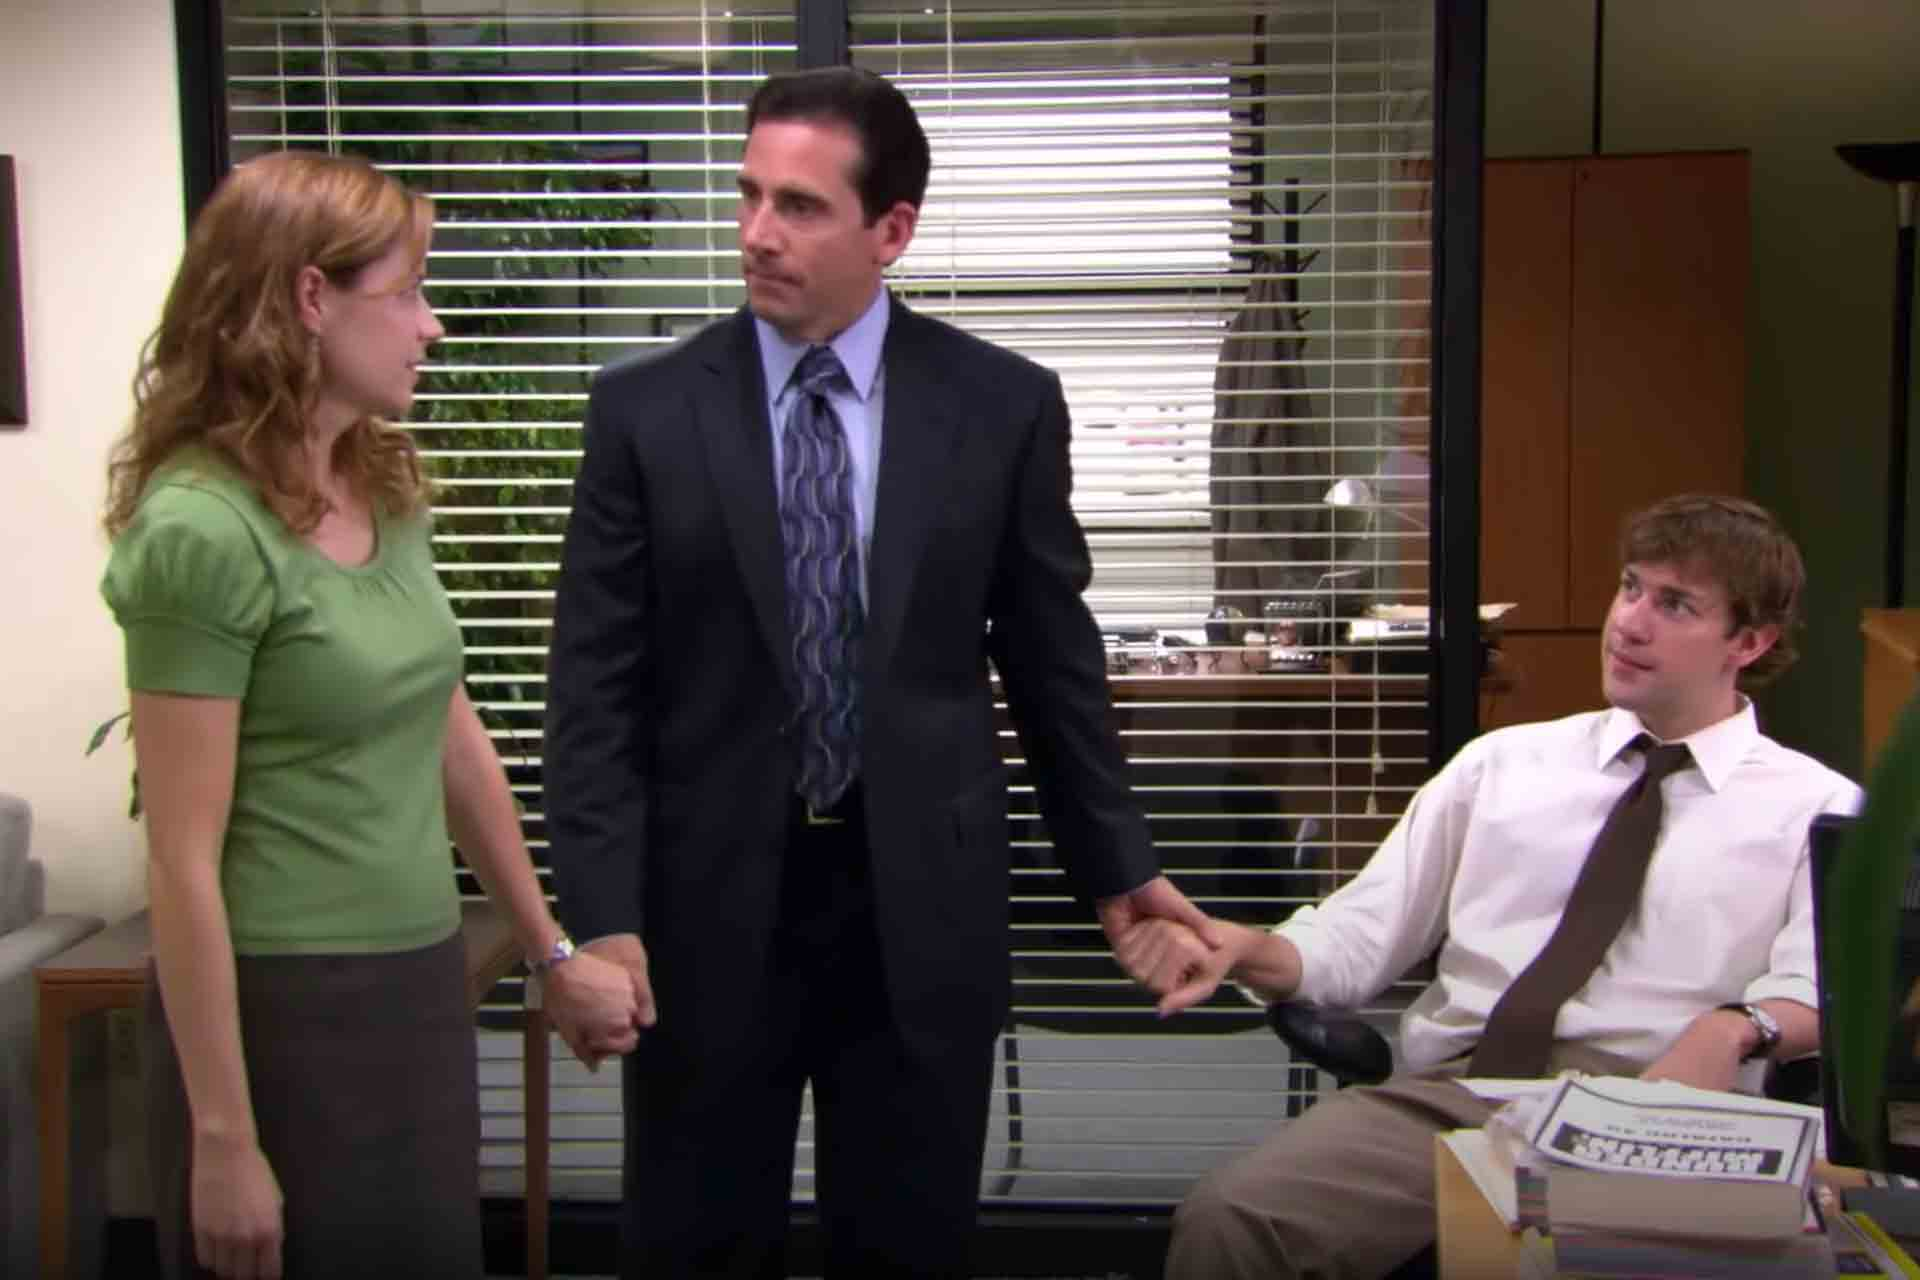 Pam and Jim were friends with Michael Scott in The Office